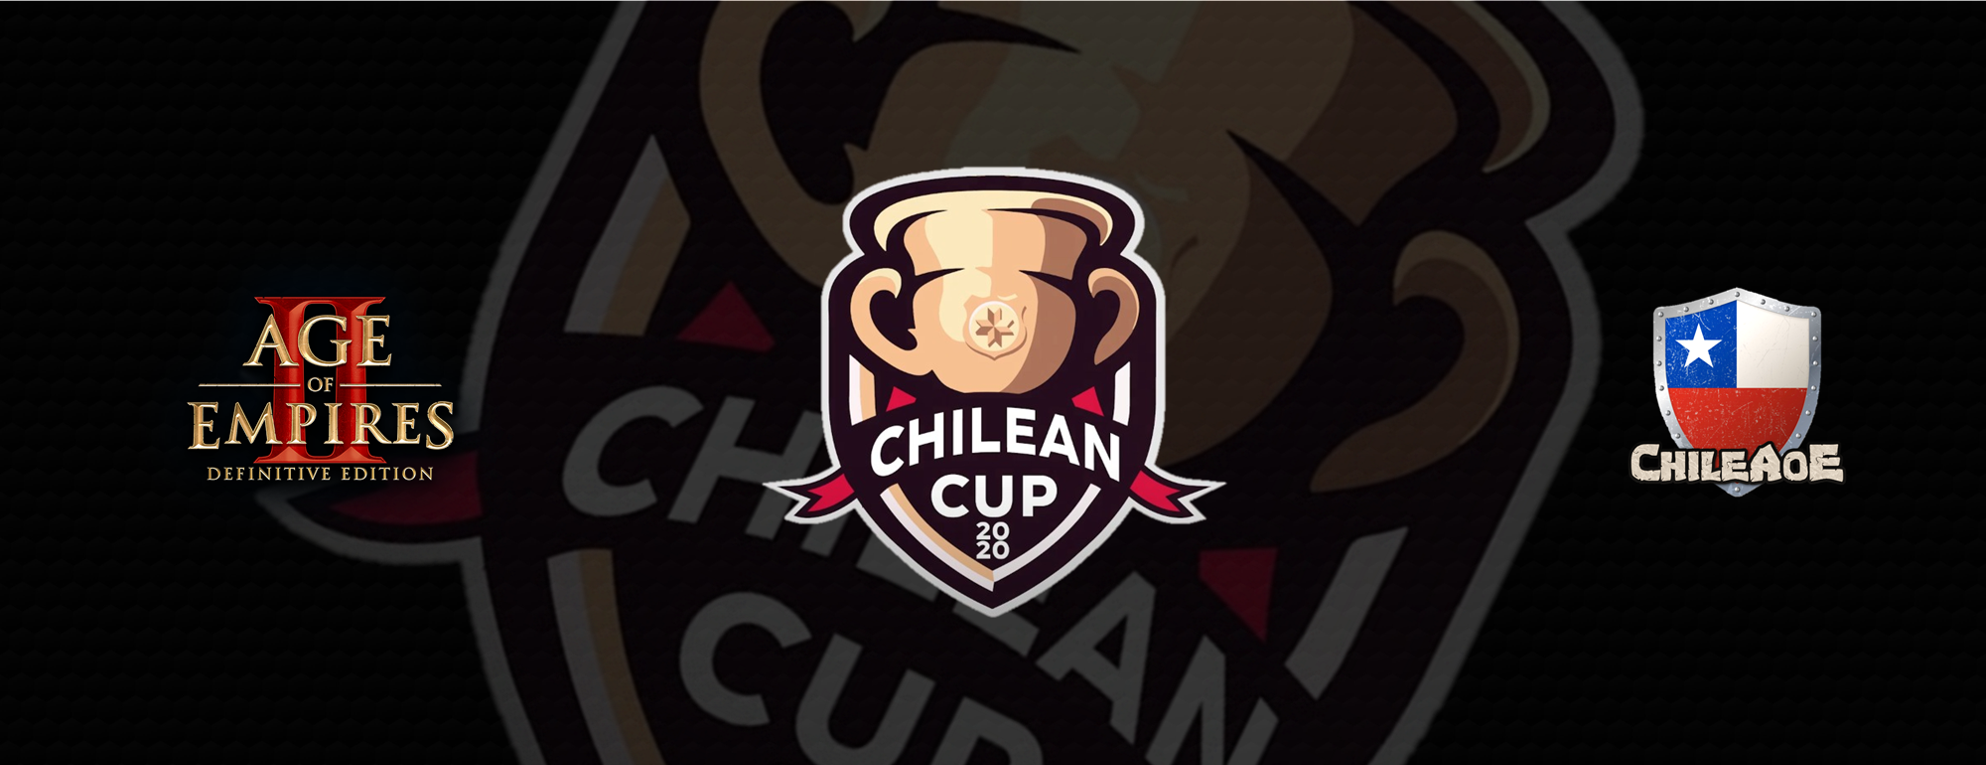 Chilean Cup.png